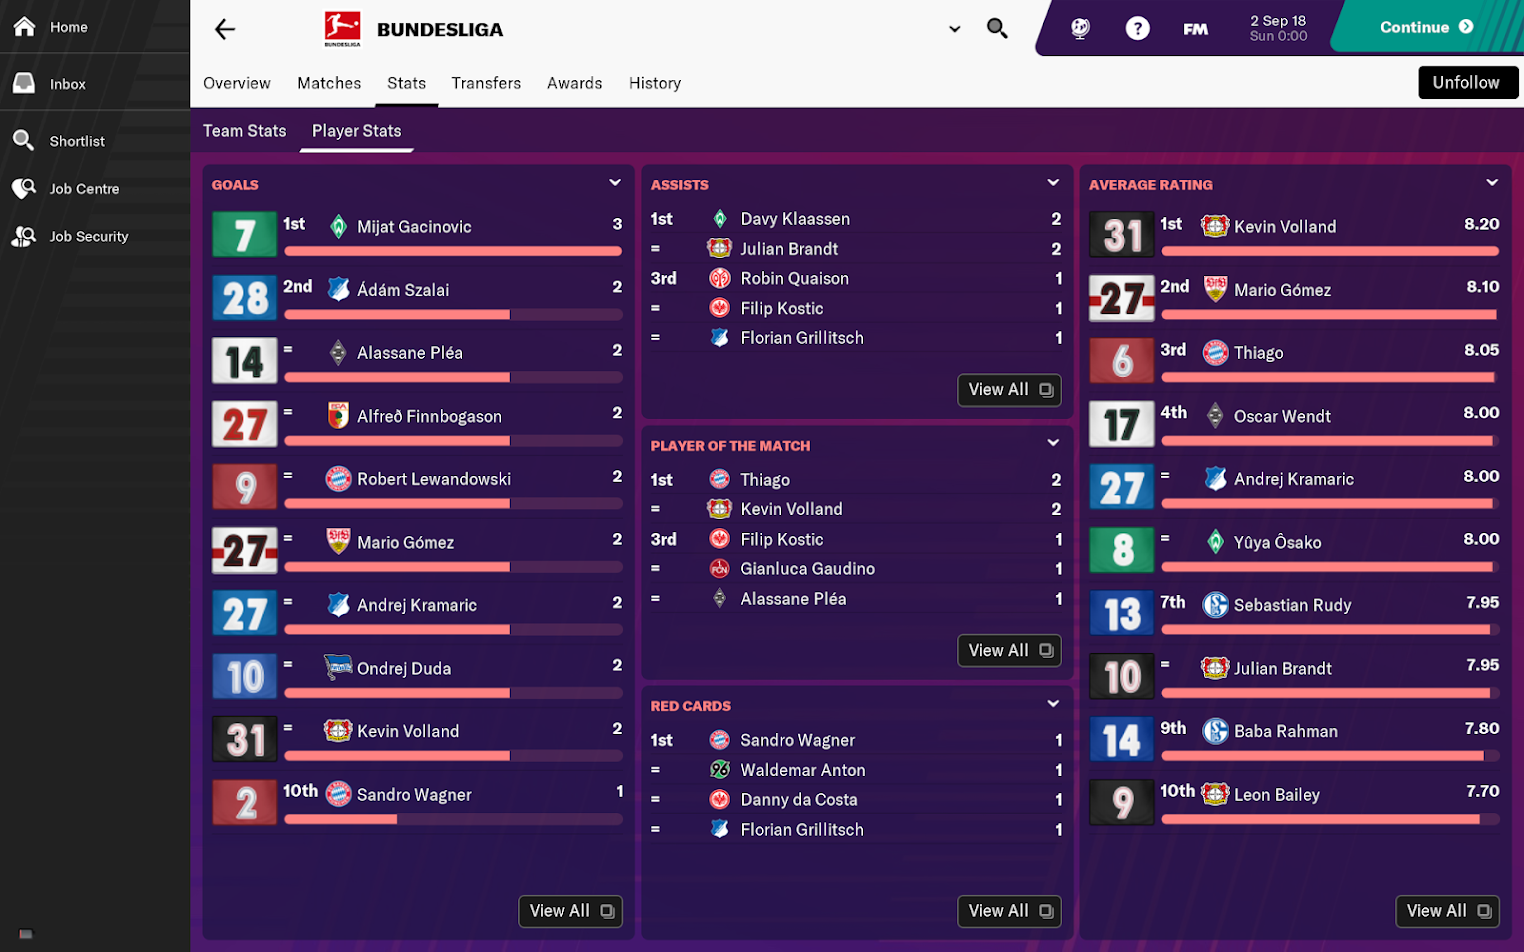 Sega's Football Manager 2019 Mobile and Football Manager 2019 Touch